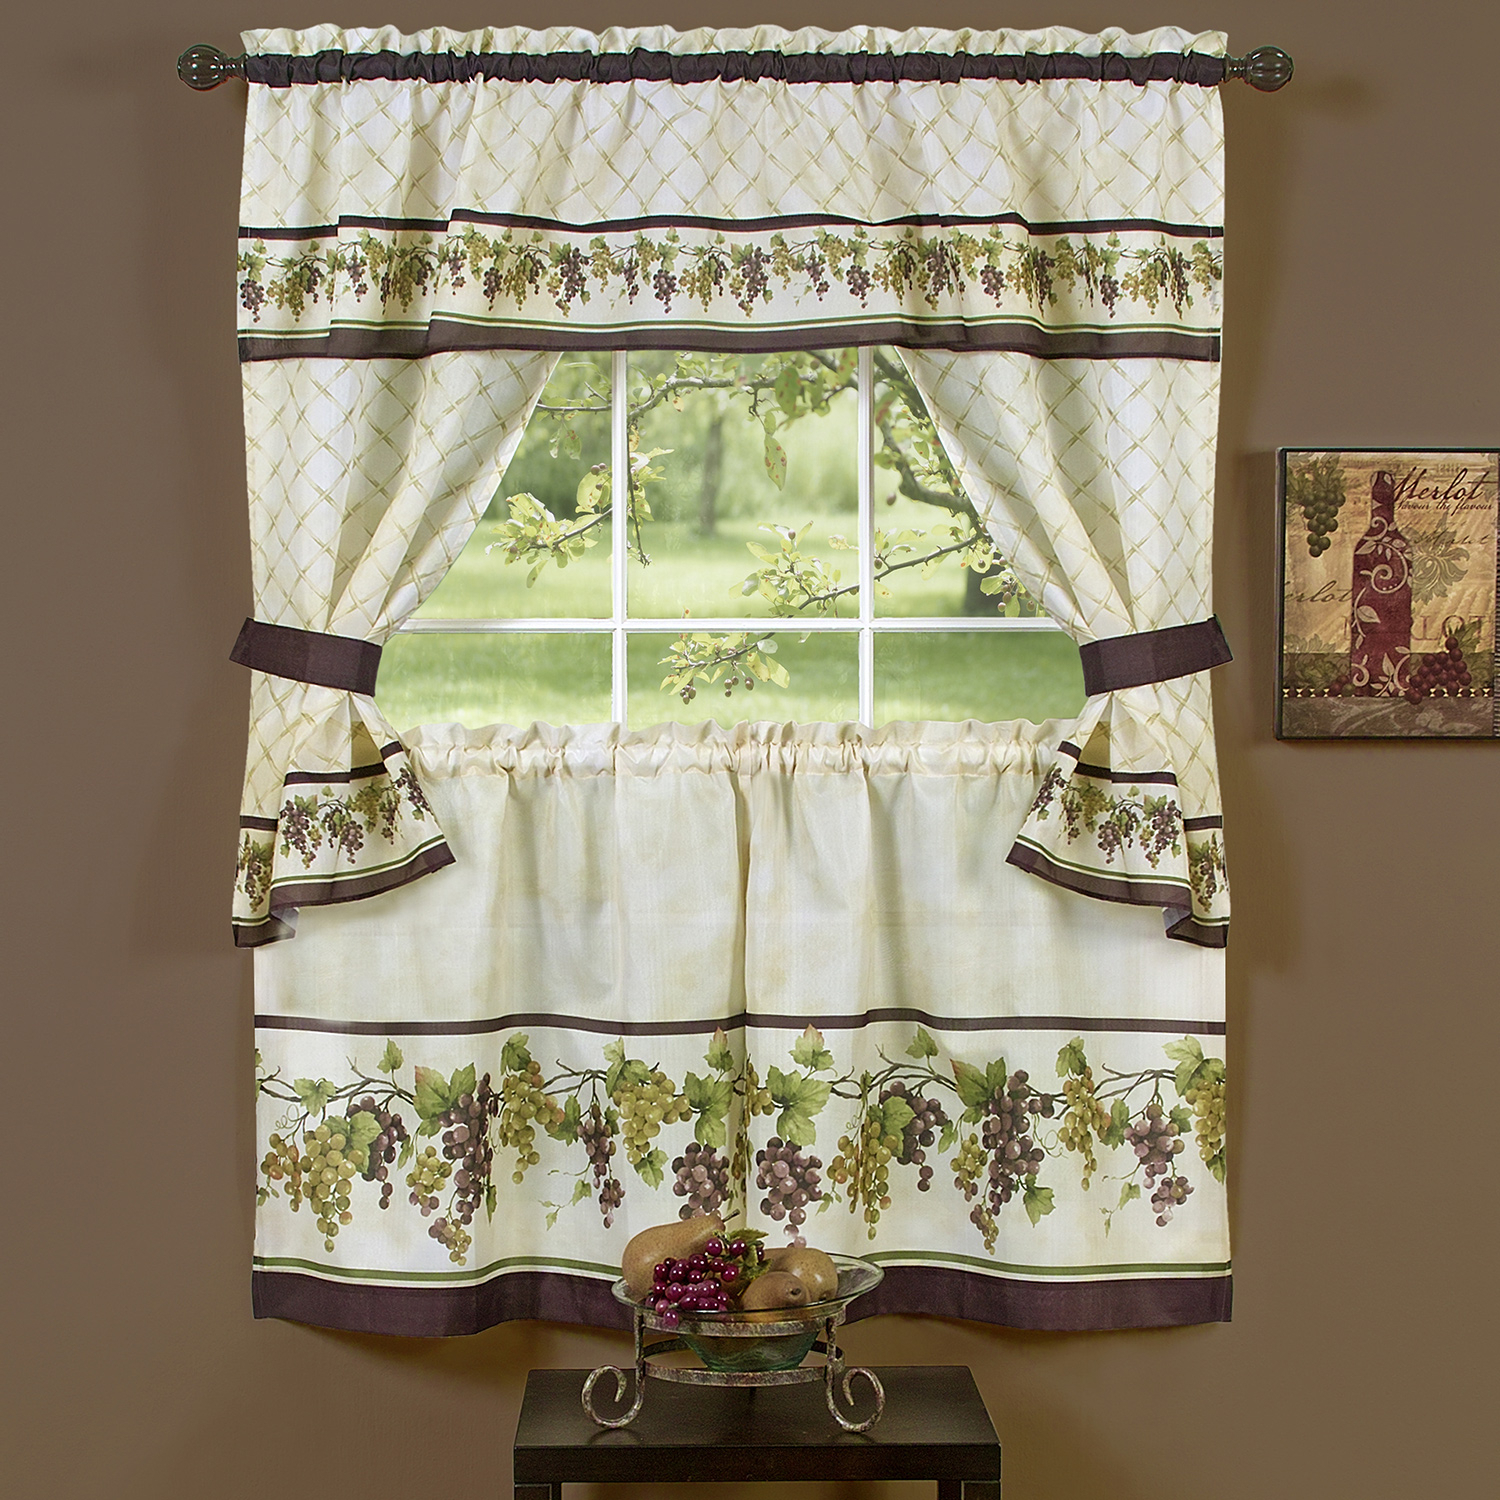 Popular Photo of Complete Cottage Curtain Sets With An Antique And Aubergine Grapvine Print